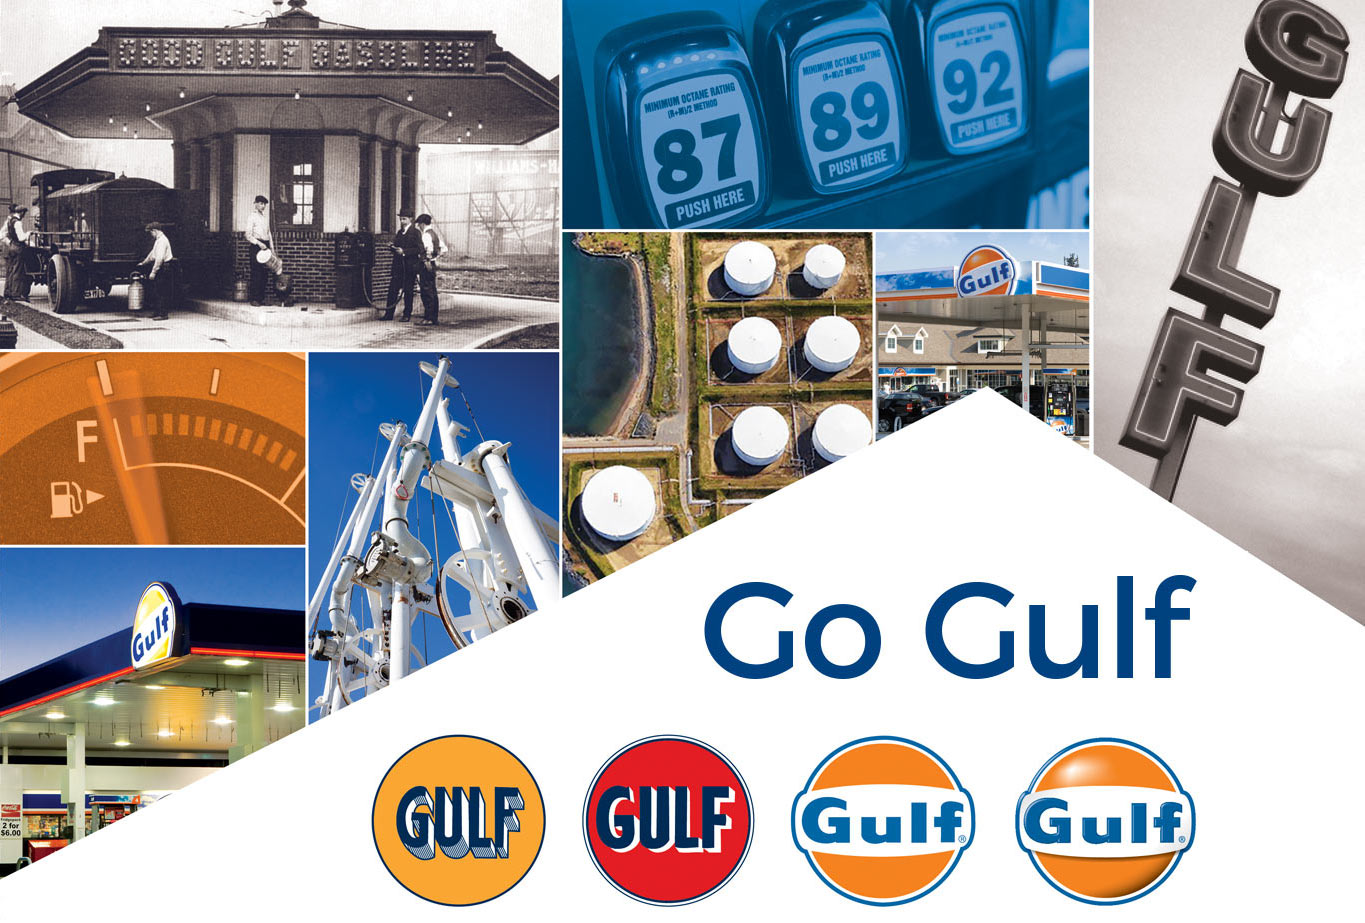 ' ' from the web at 'https://www.gulfoil.com/sites/default/files/5_1_img1.jpg'